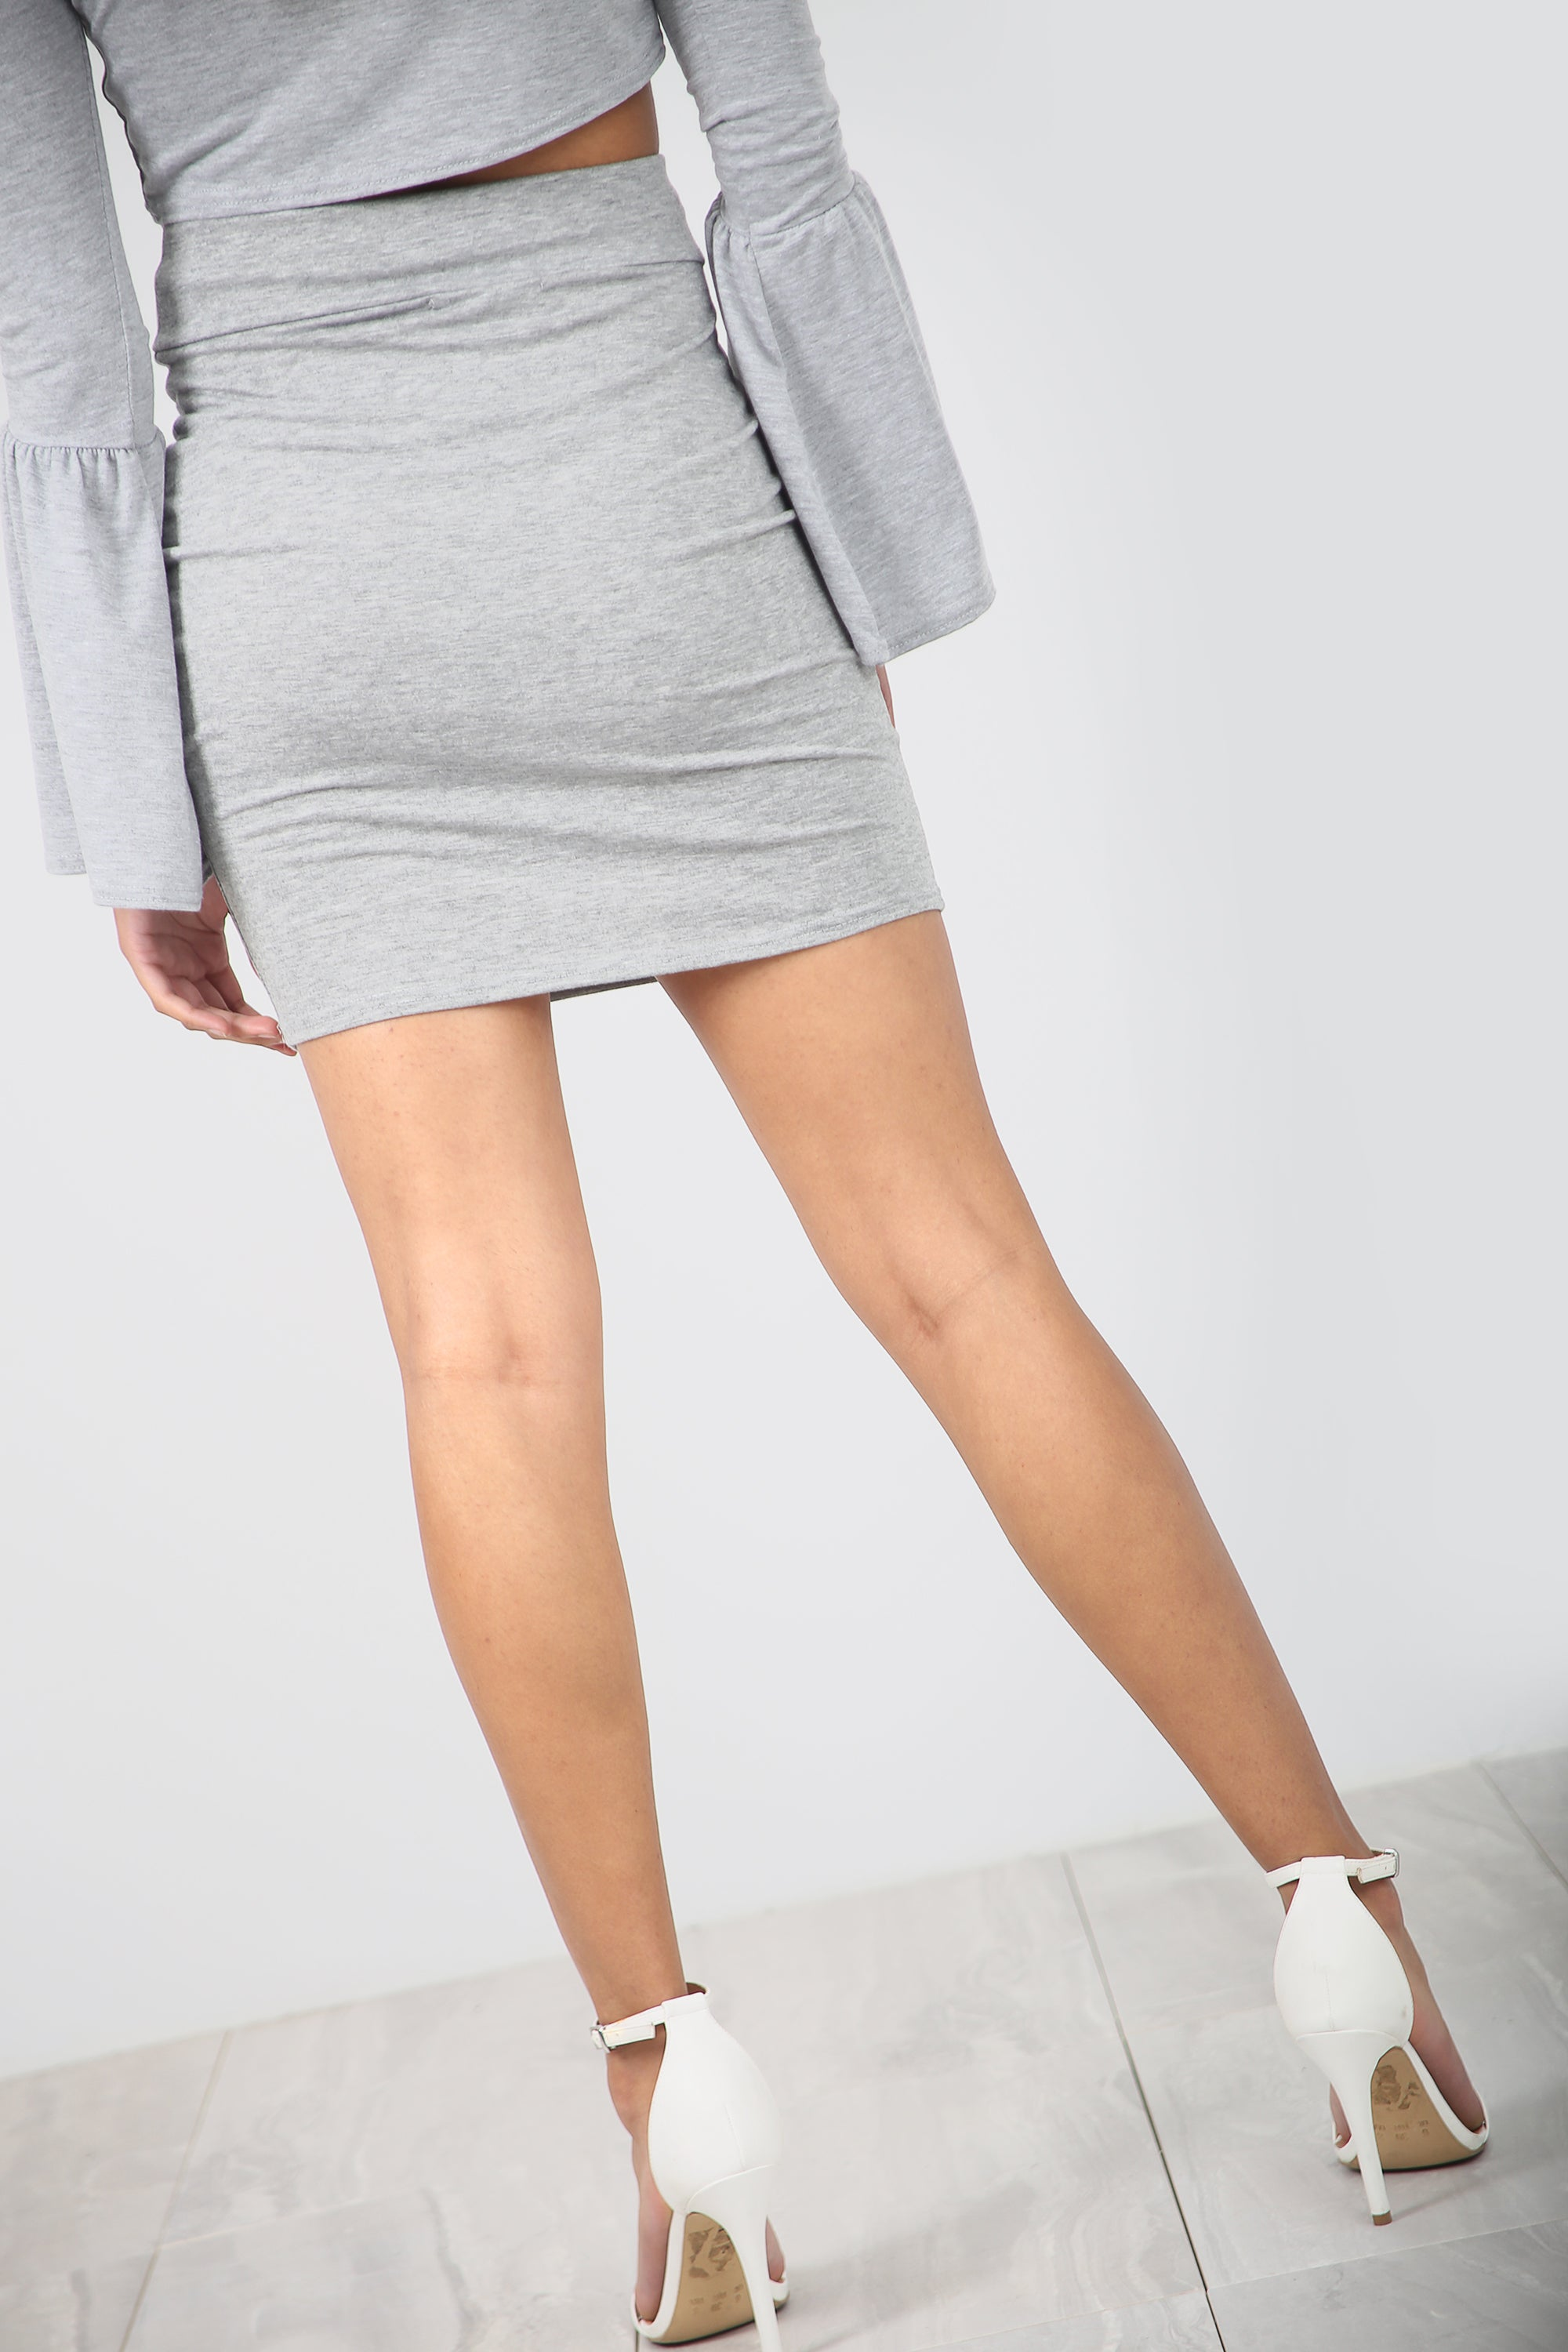 High Waist Basic Jersey Black Mini Skirt - bejealous-com